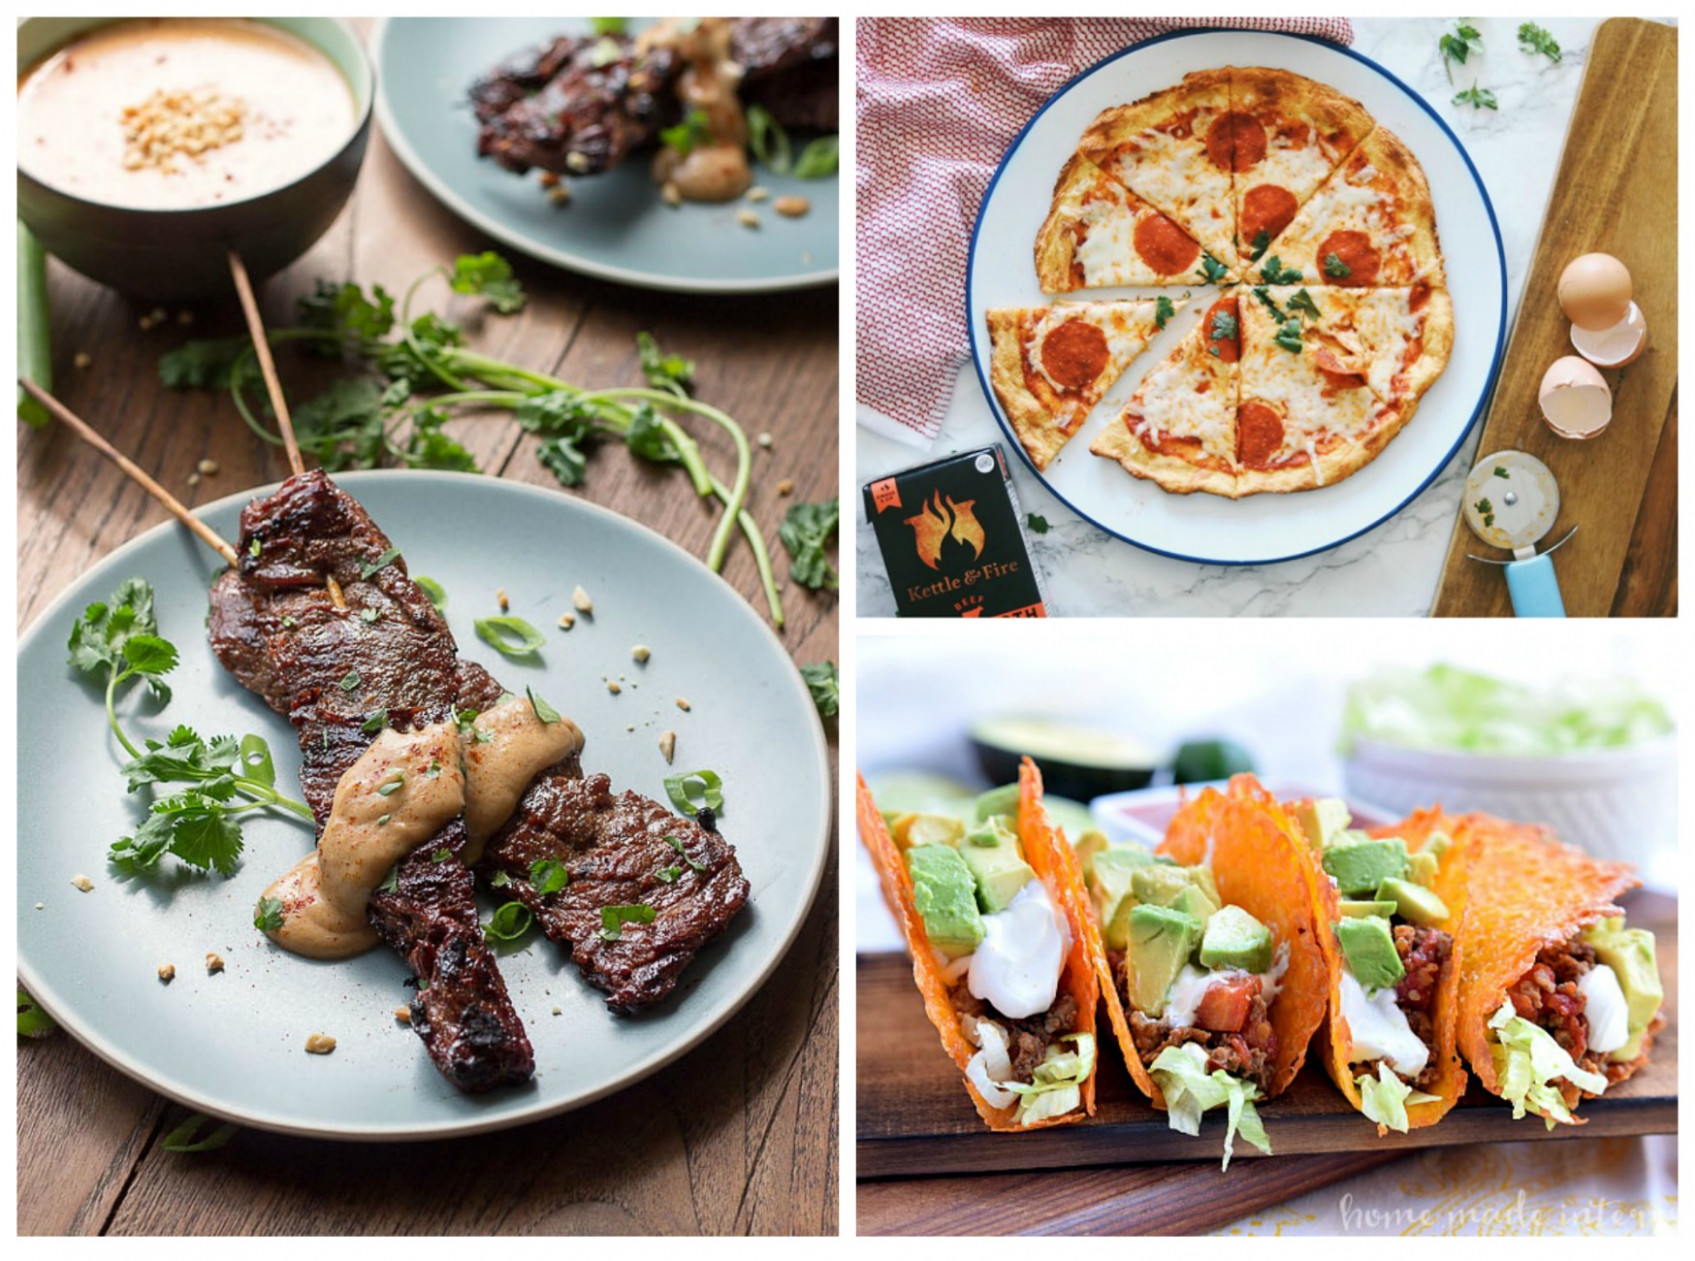 Fast And Easy Keto Dinner Ideas - LowCarbHub